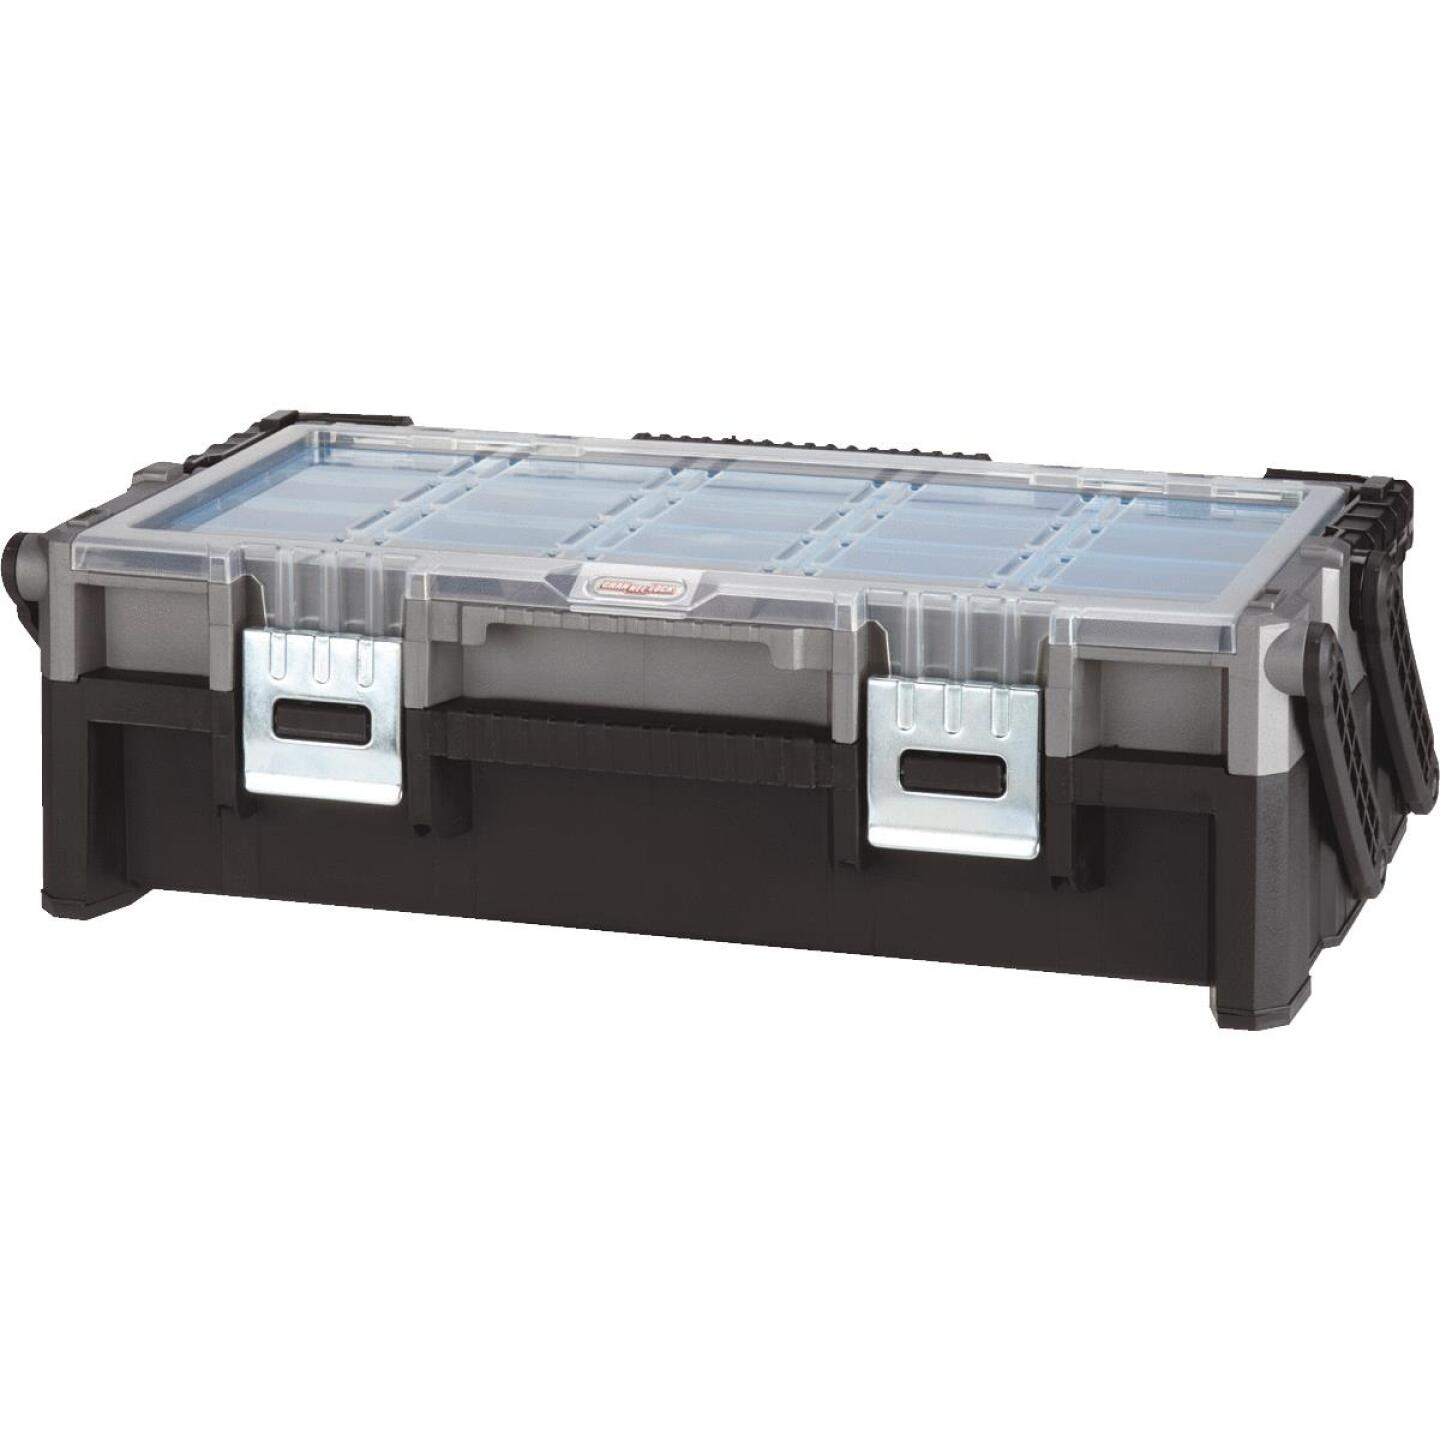 Channellock 22.5 In. Cantilever Parts Organizer Storage Box Image 6